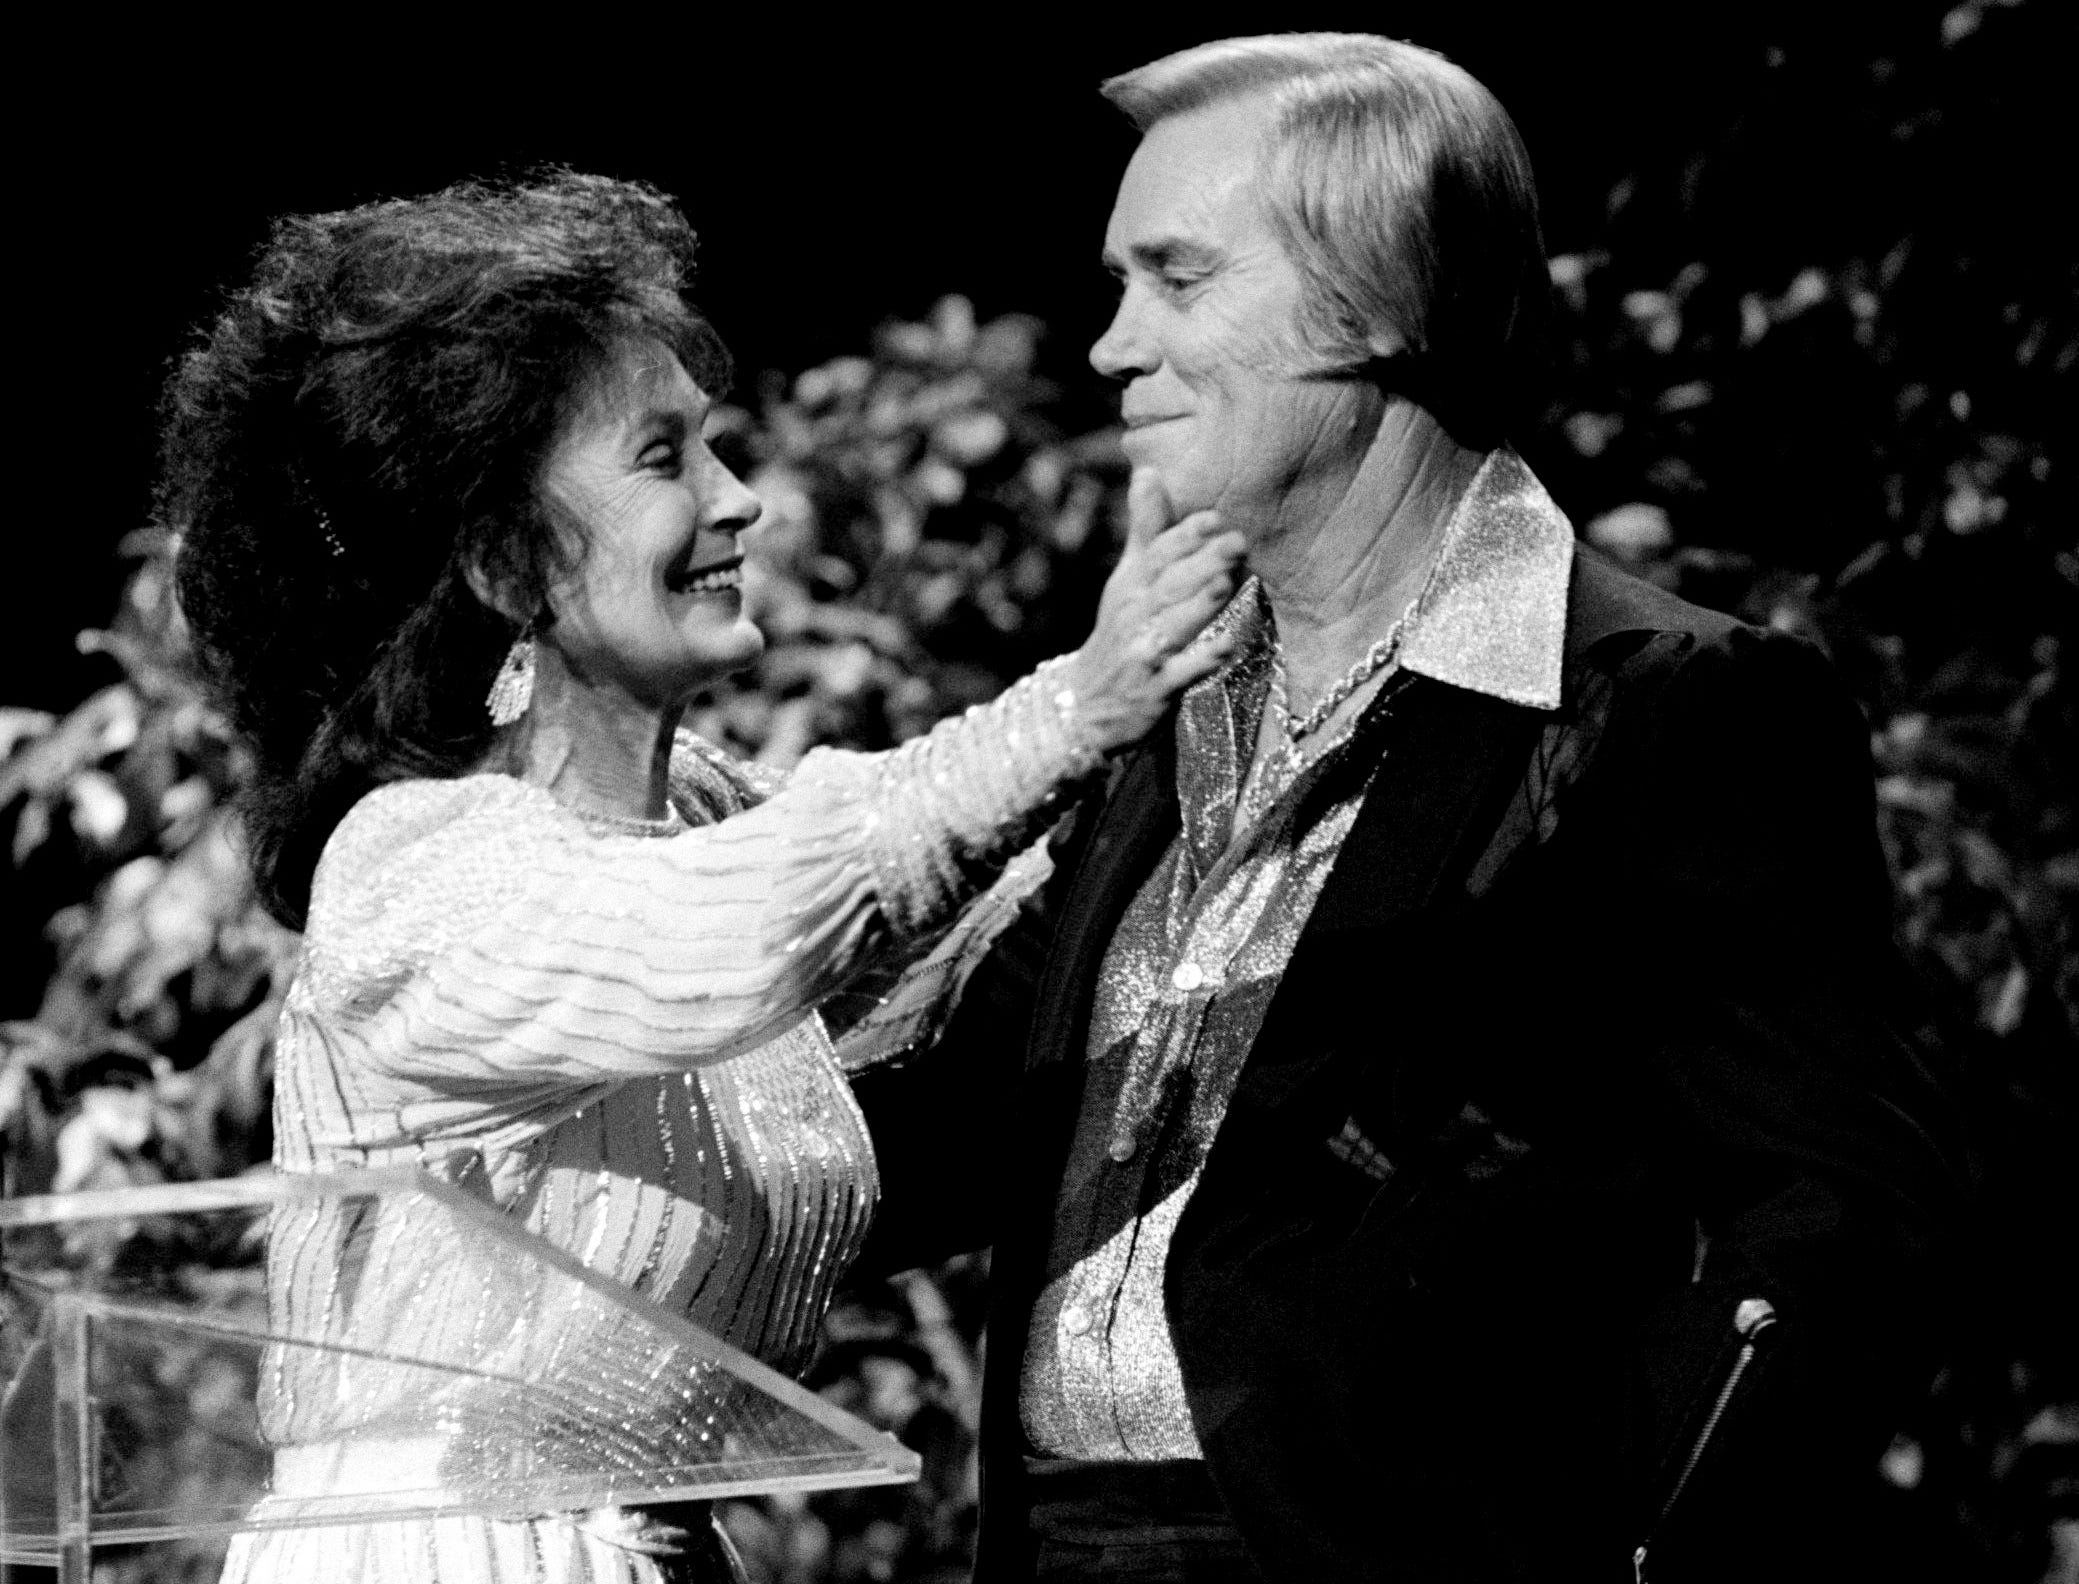 Presenter Loretta Lynn, left, introduces George Jones warmly as he receives the Music City News Living Legend Award during the awards show at the Grand Ole Opry House June 8, 1987.